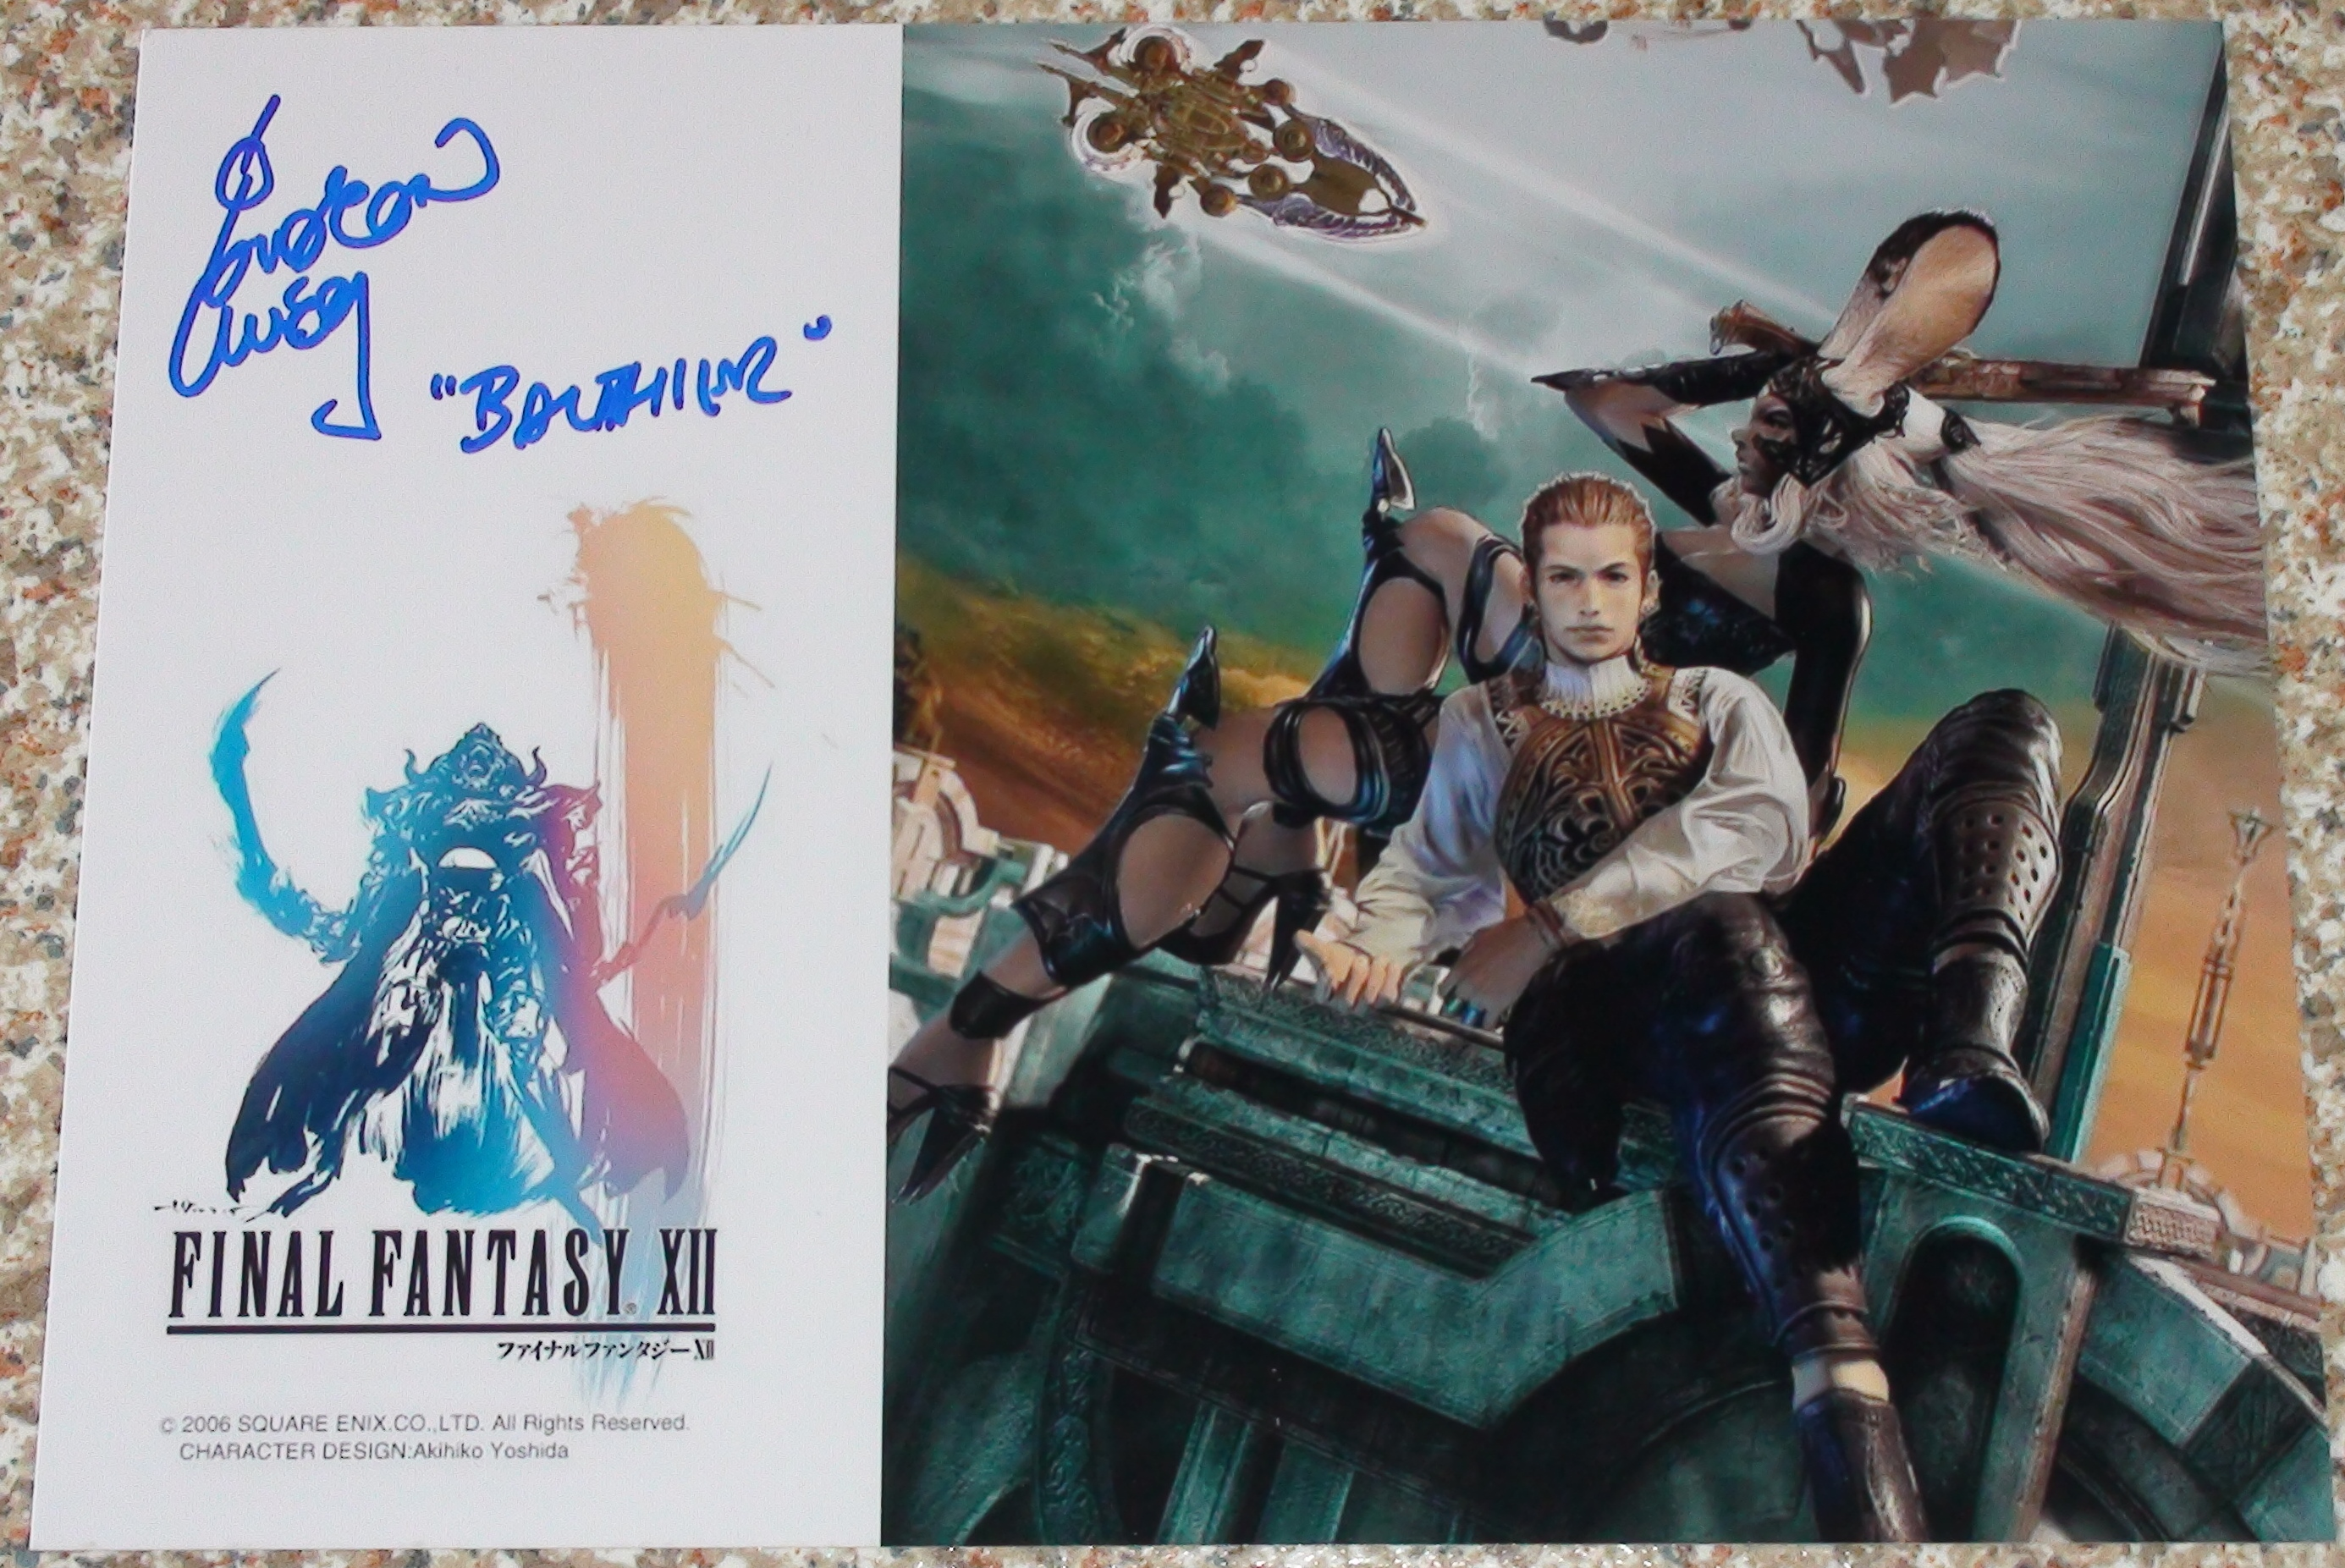 Final Fantasy XII - Gideon Emery